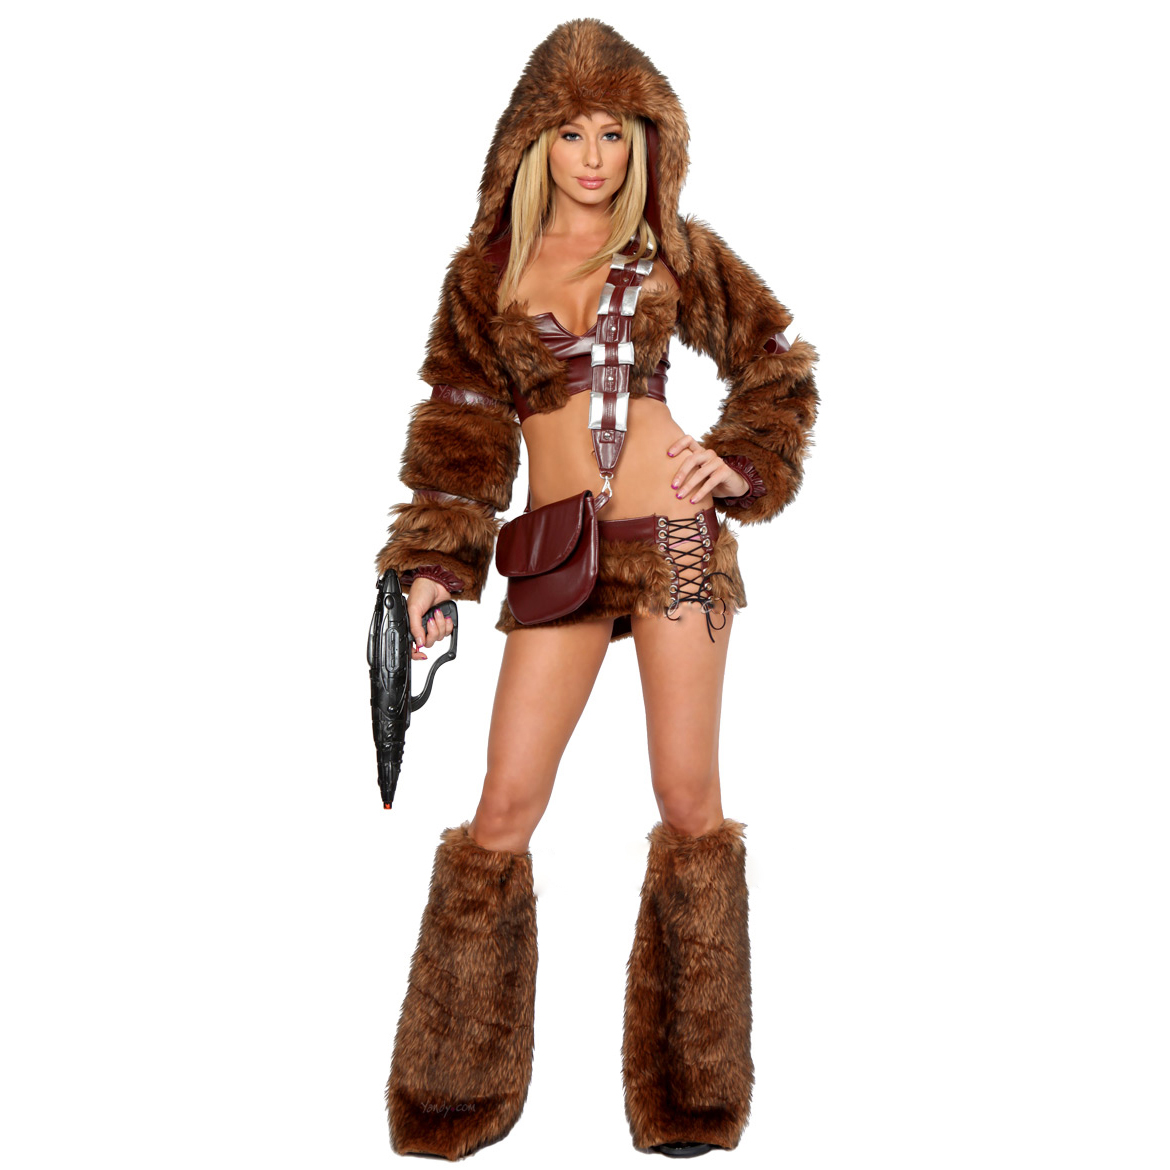 Sci Fi Furry Costume N6104 Animal Costumes Wholesale